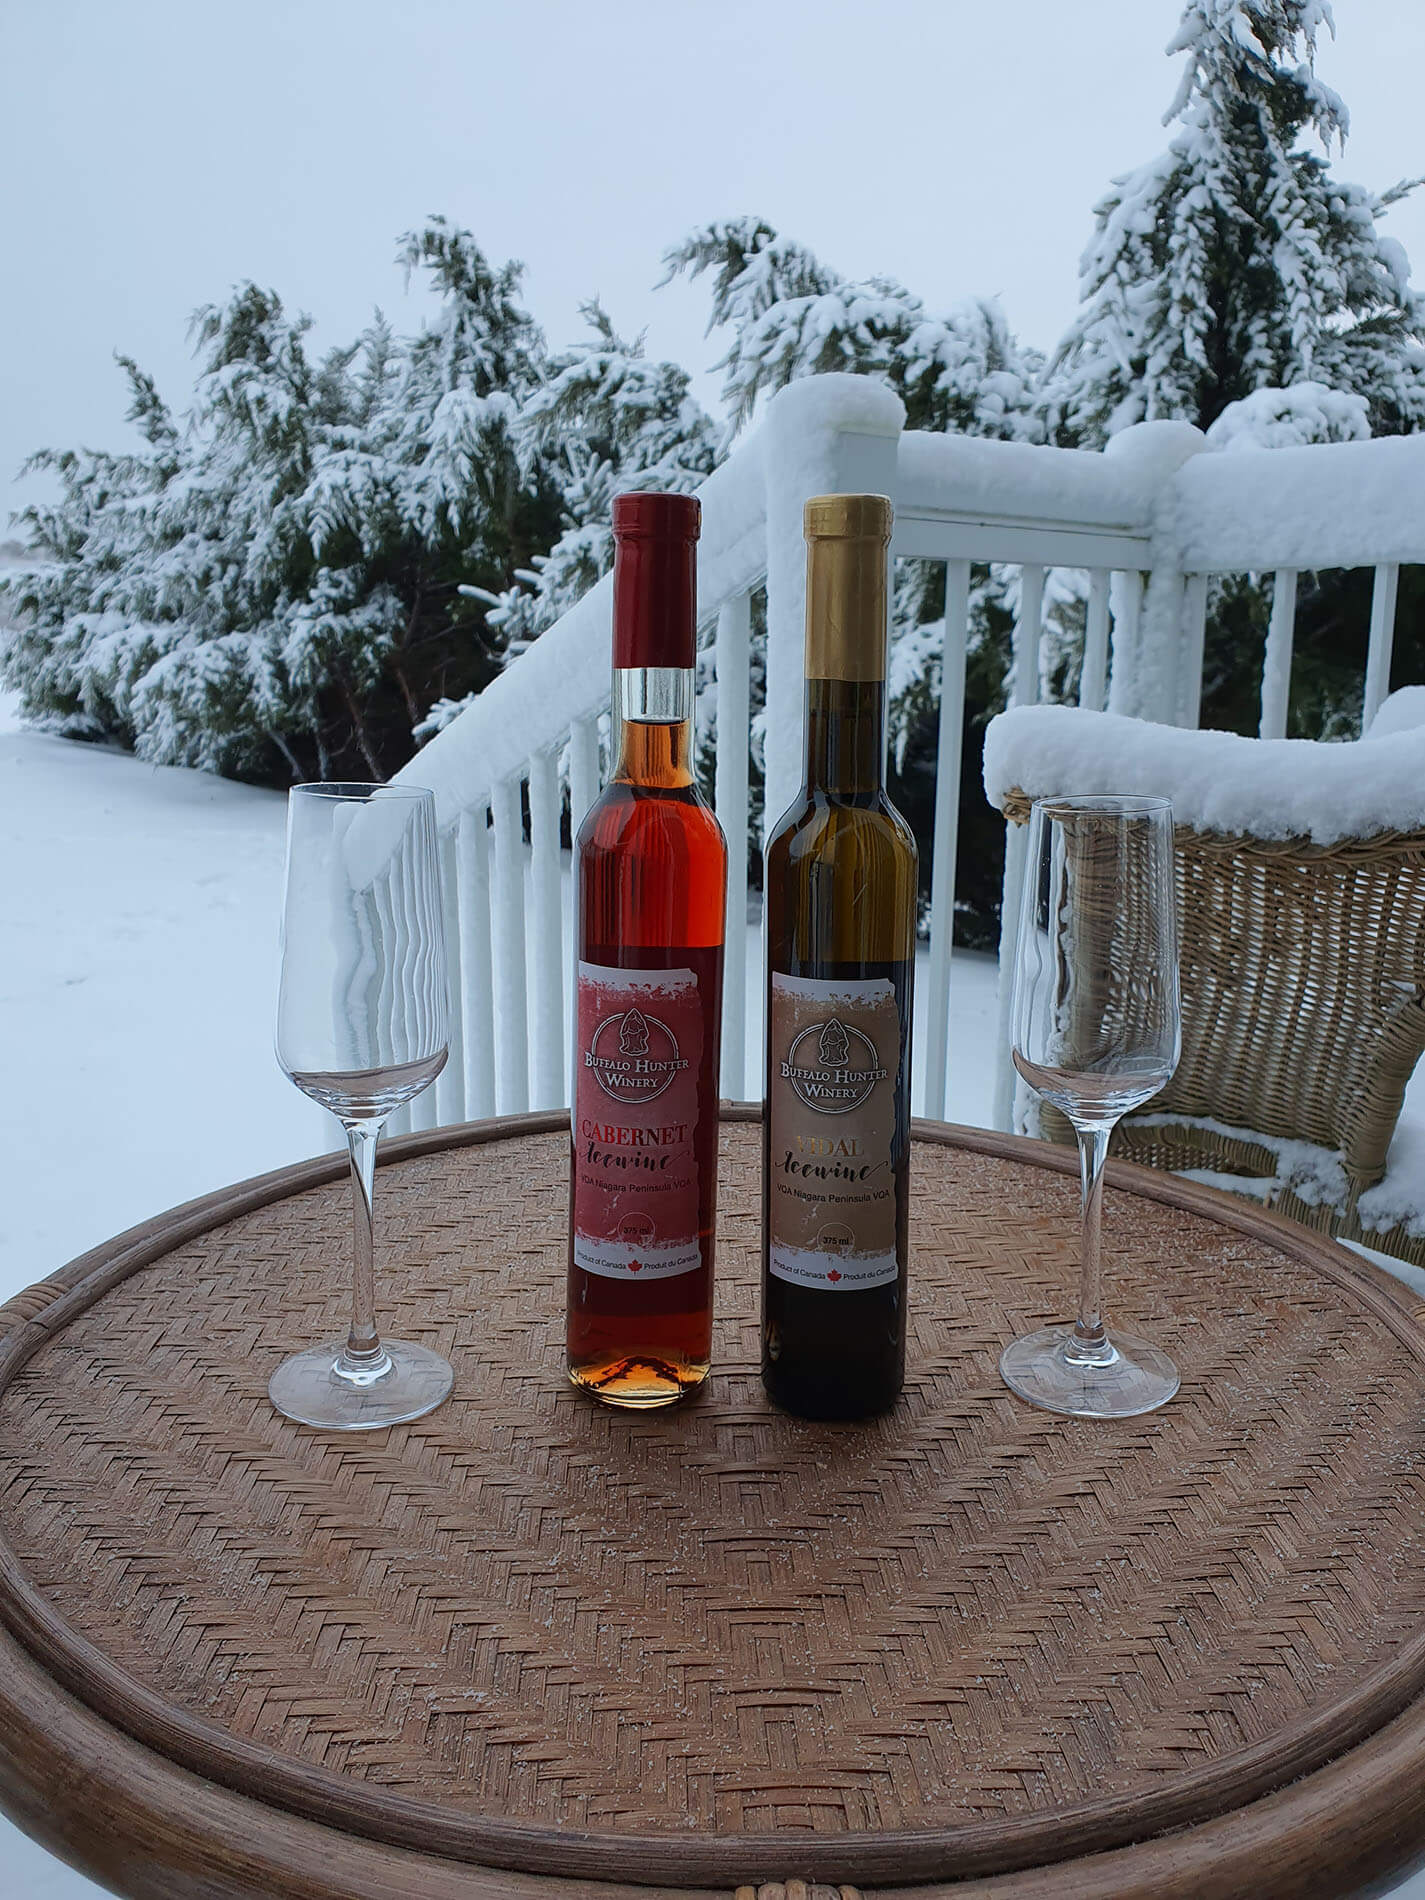 Icewine - final product